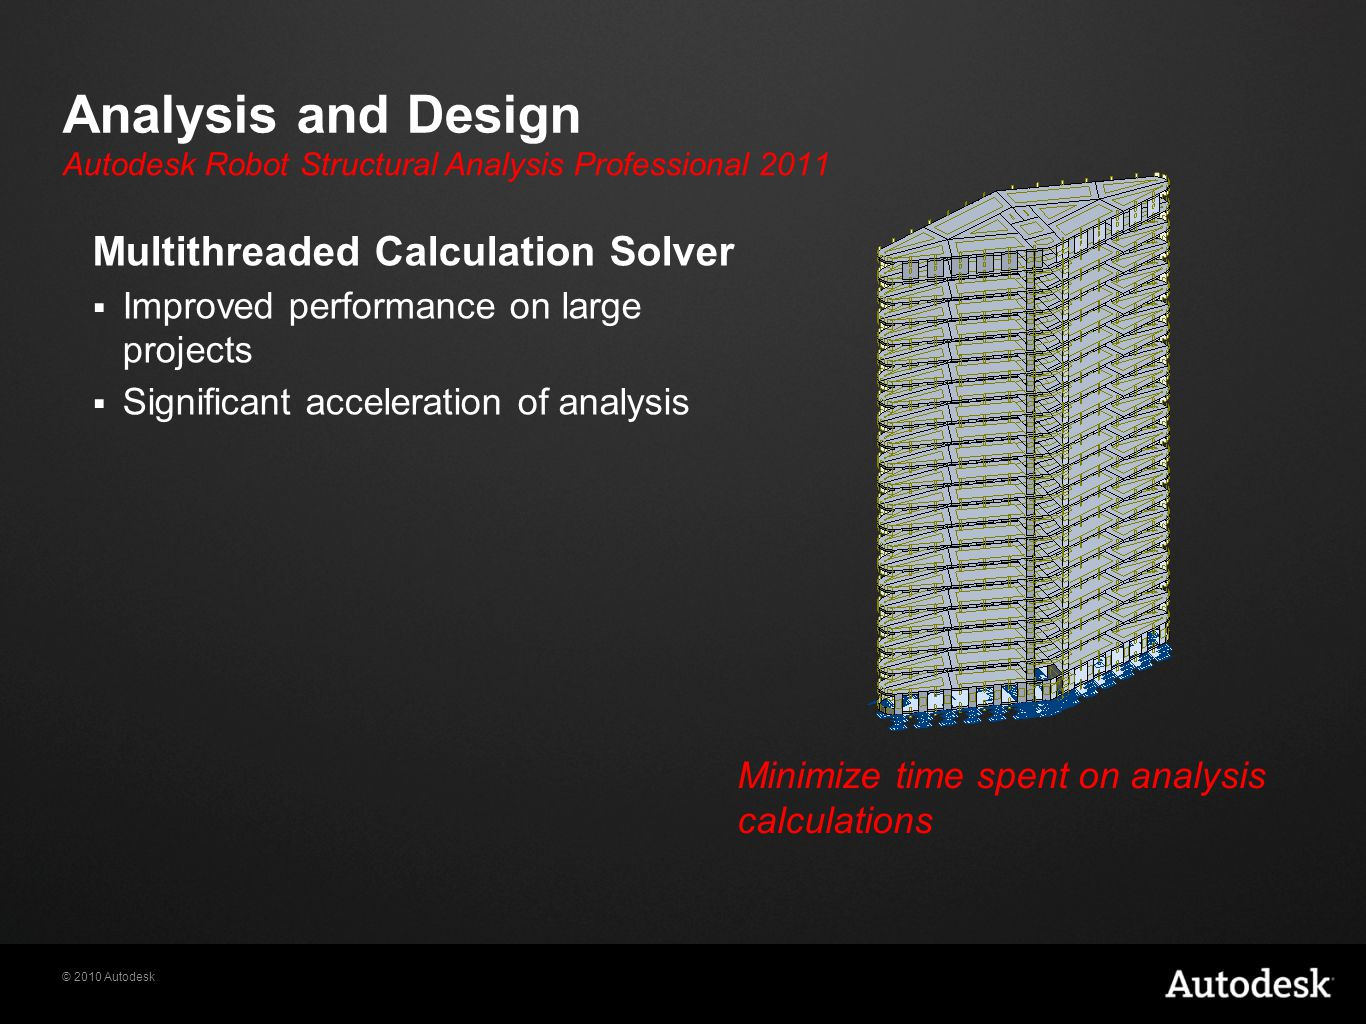 © 2010 Autodesk Analysis and Design Multithreaded Calculation Solver  Improved performance on large projects  Significant acceleration of analysis Minimize time spent on analysis calculations Autodesk Robot Structural Analysis Professional 2011